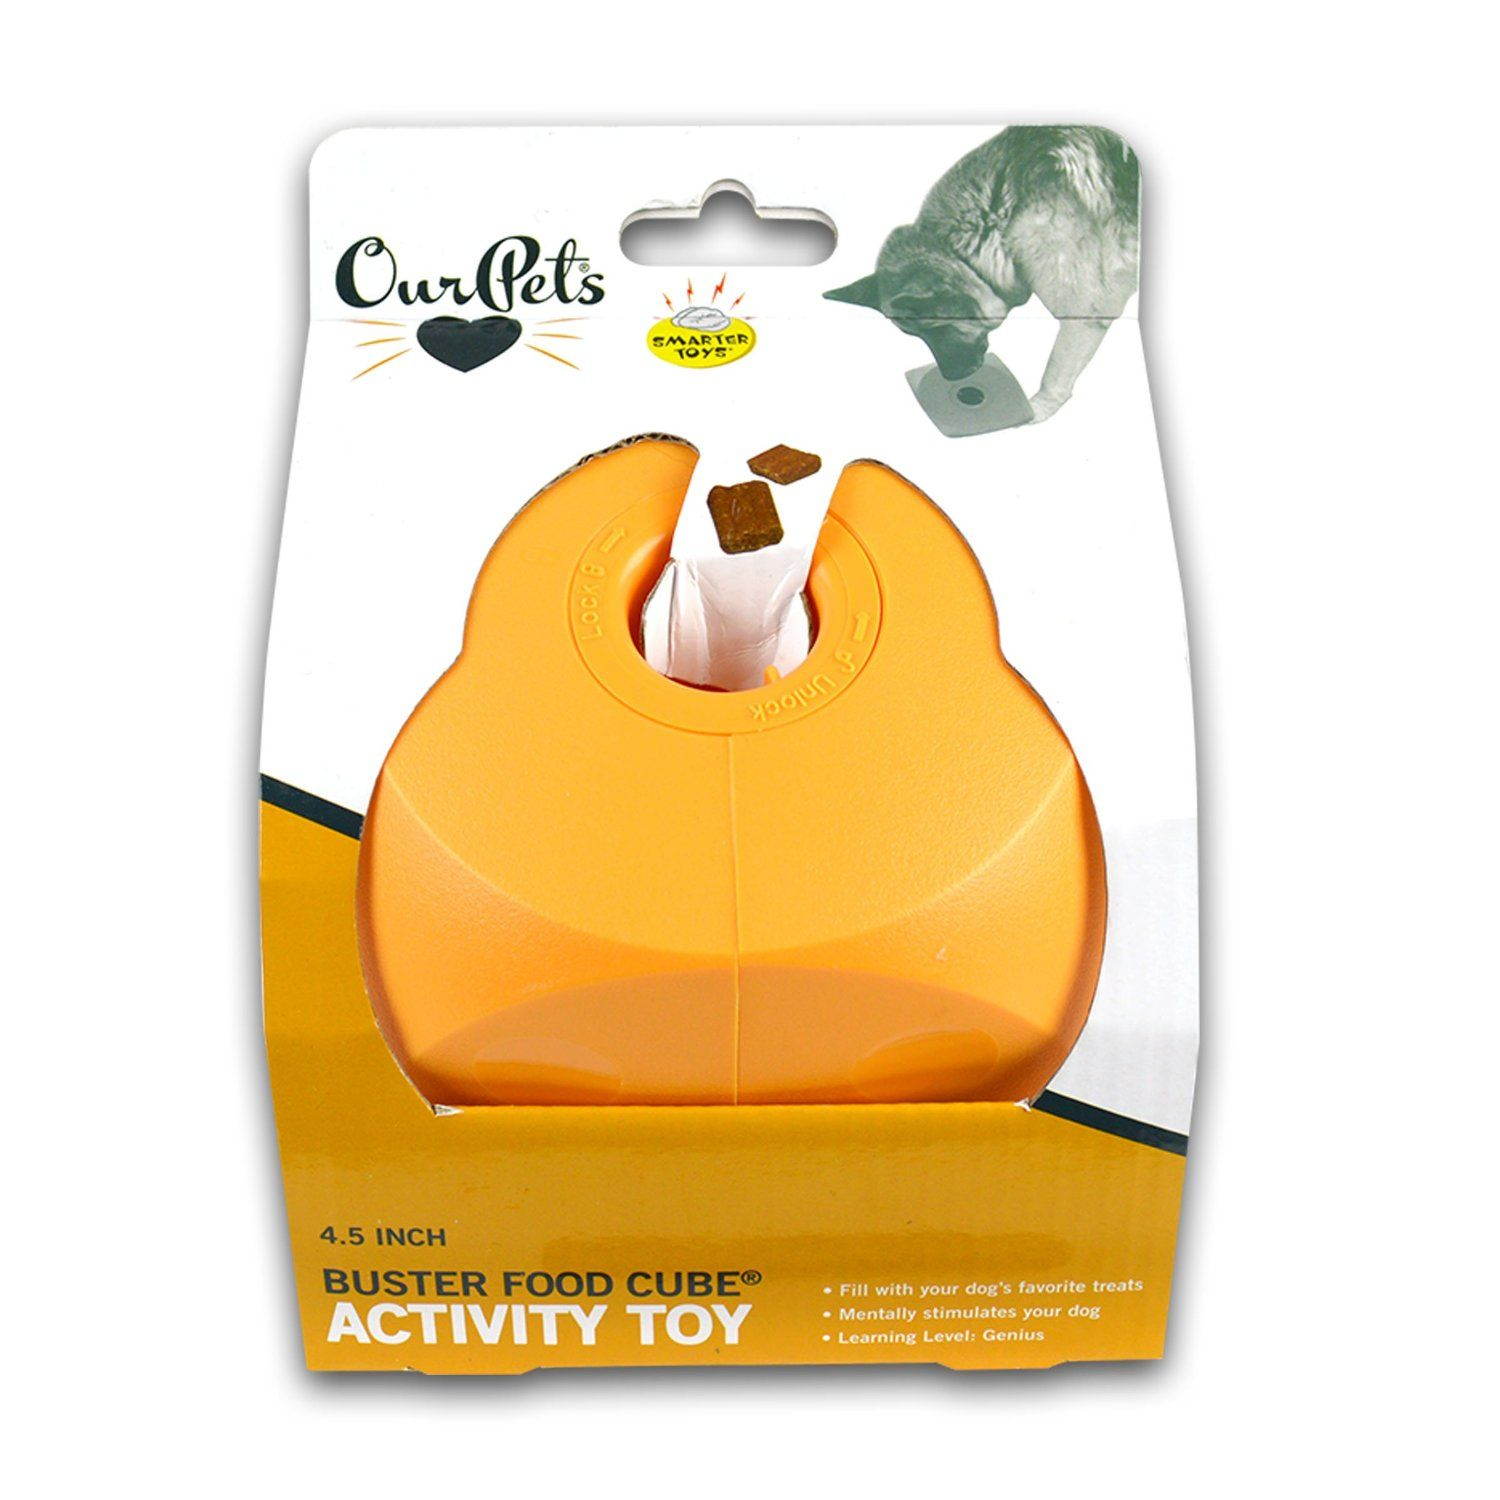 Ourpets Buster Food Cube Interactive Dog Toy Colors Vary